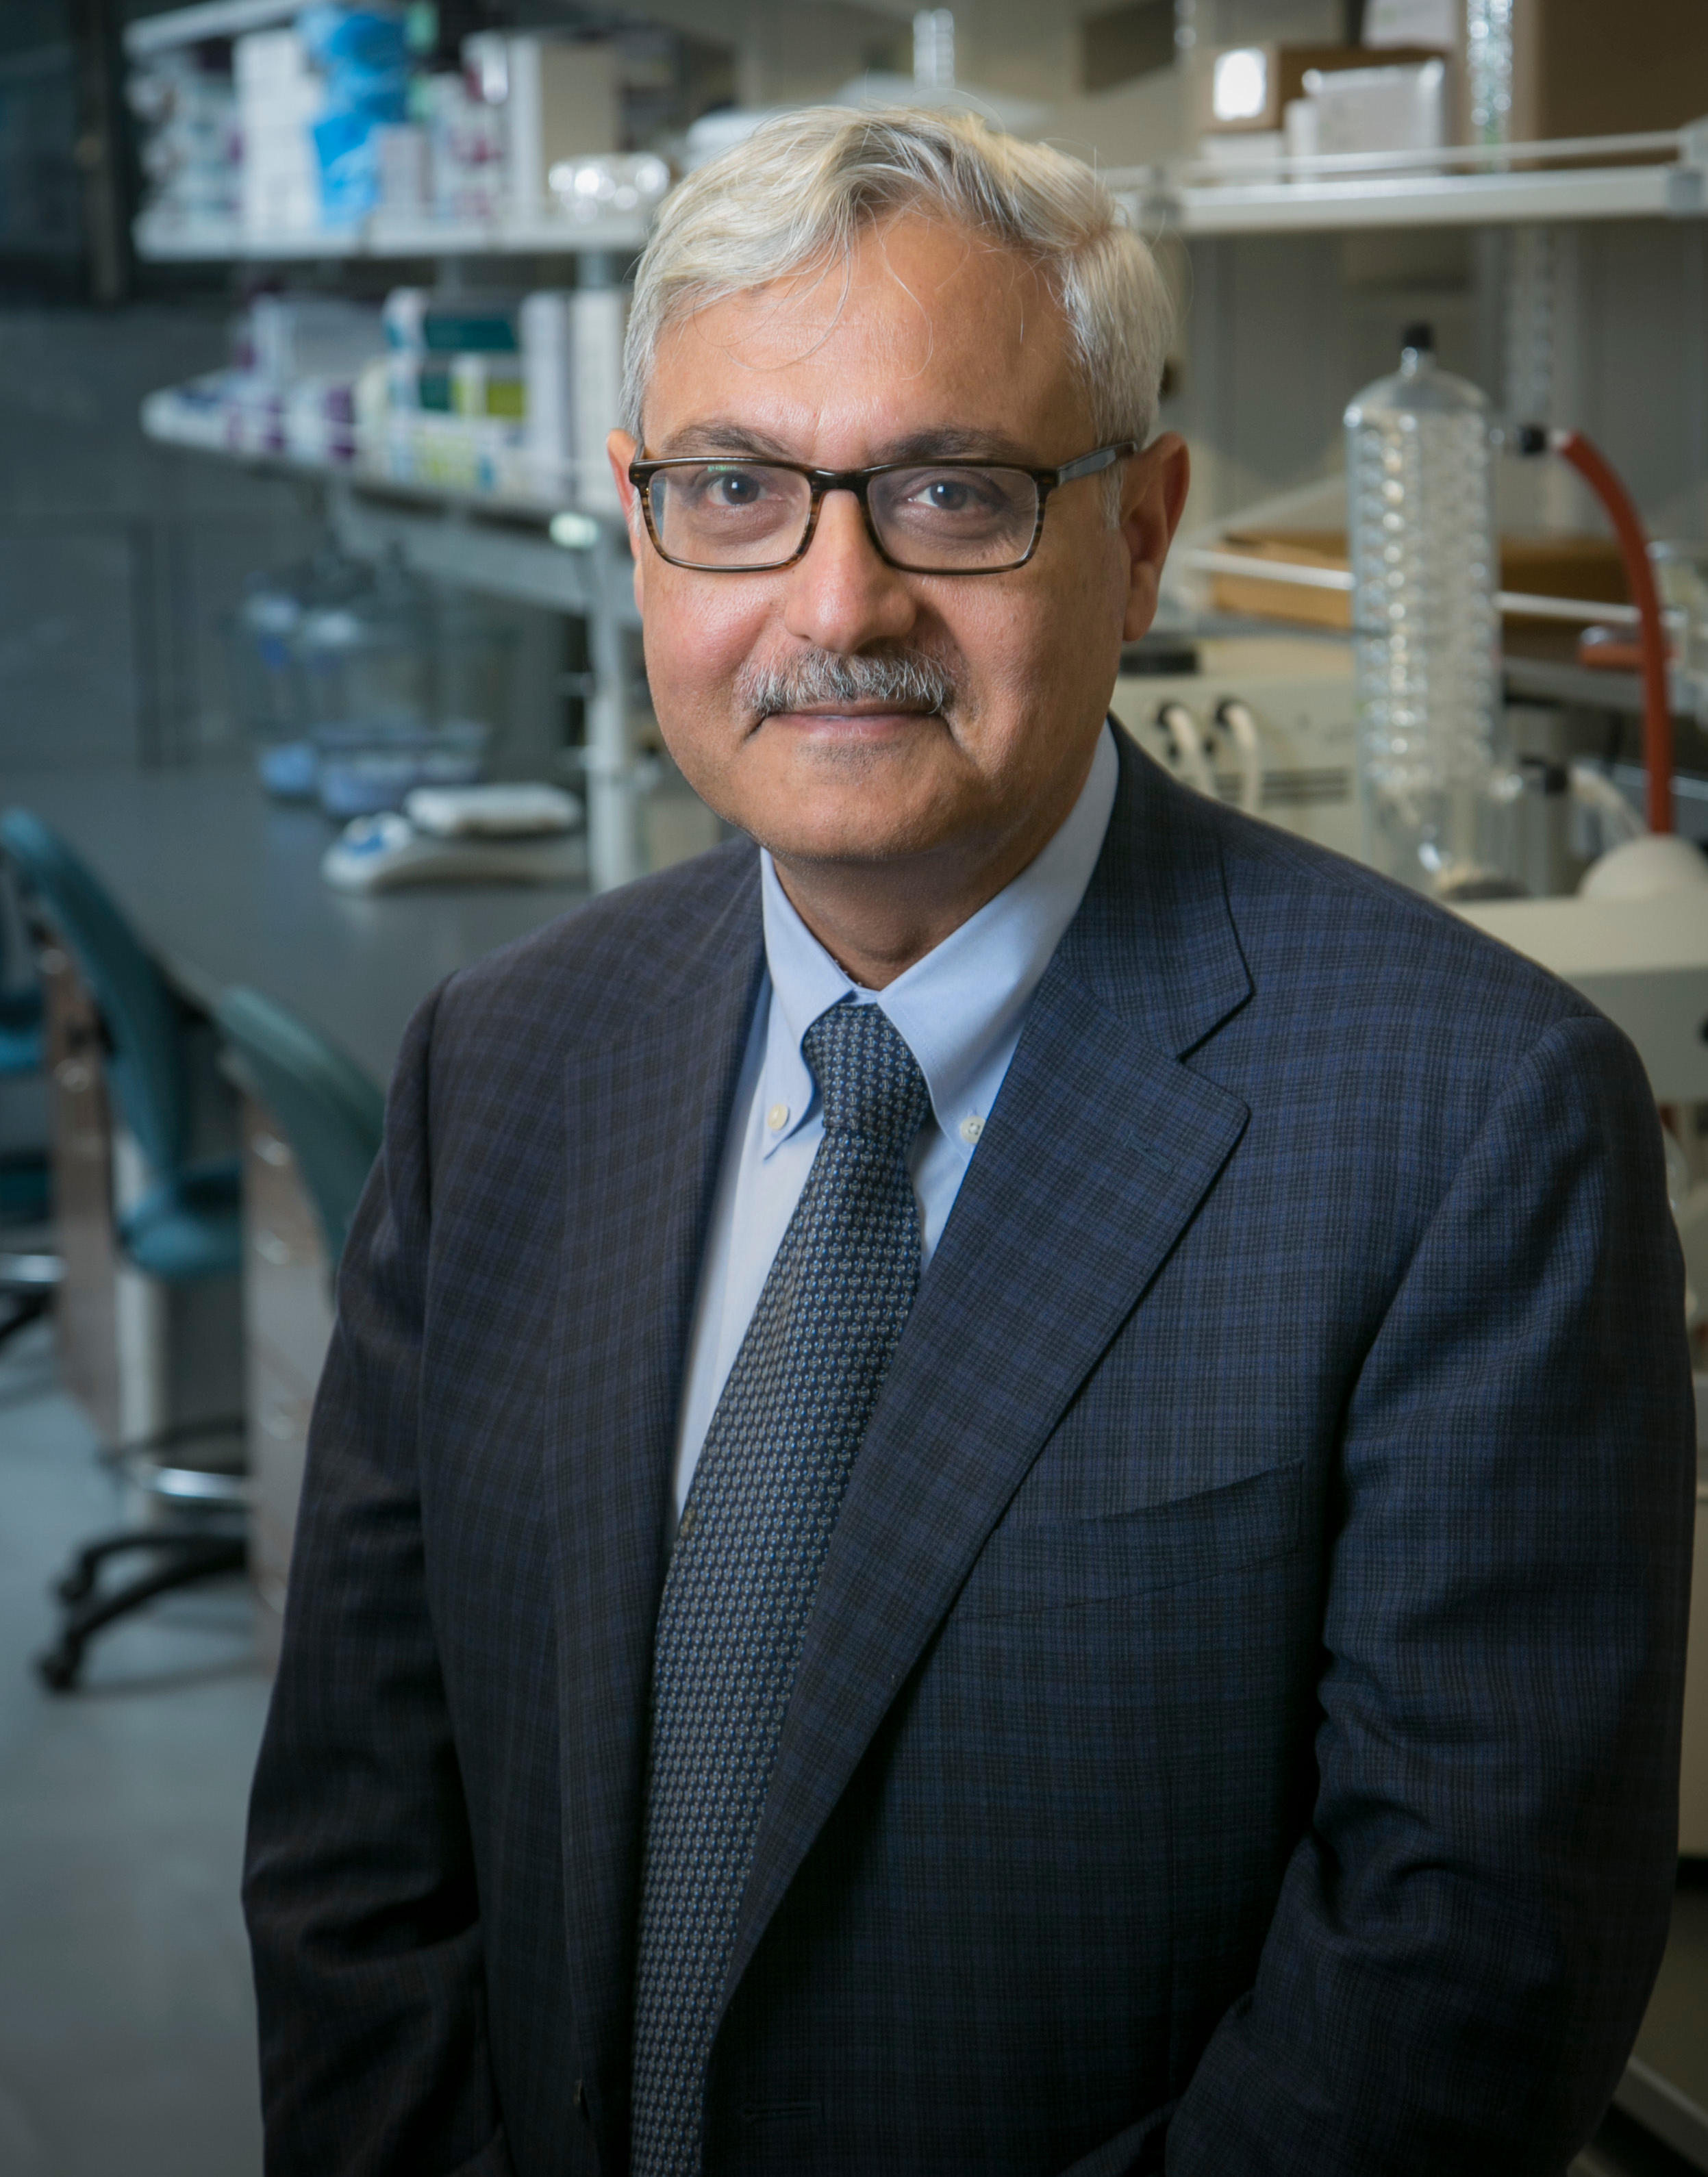 Ashutosh Chilkoti, Chair and Alan L. Kaganov Professor of Biomedical Engineering